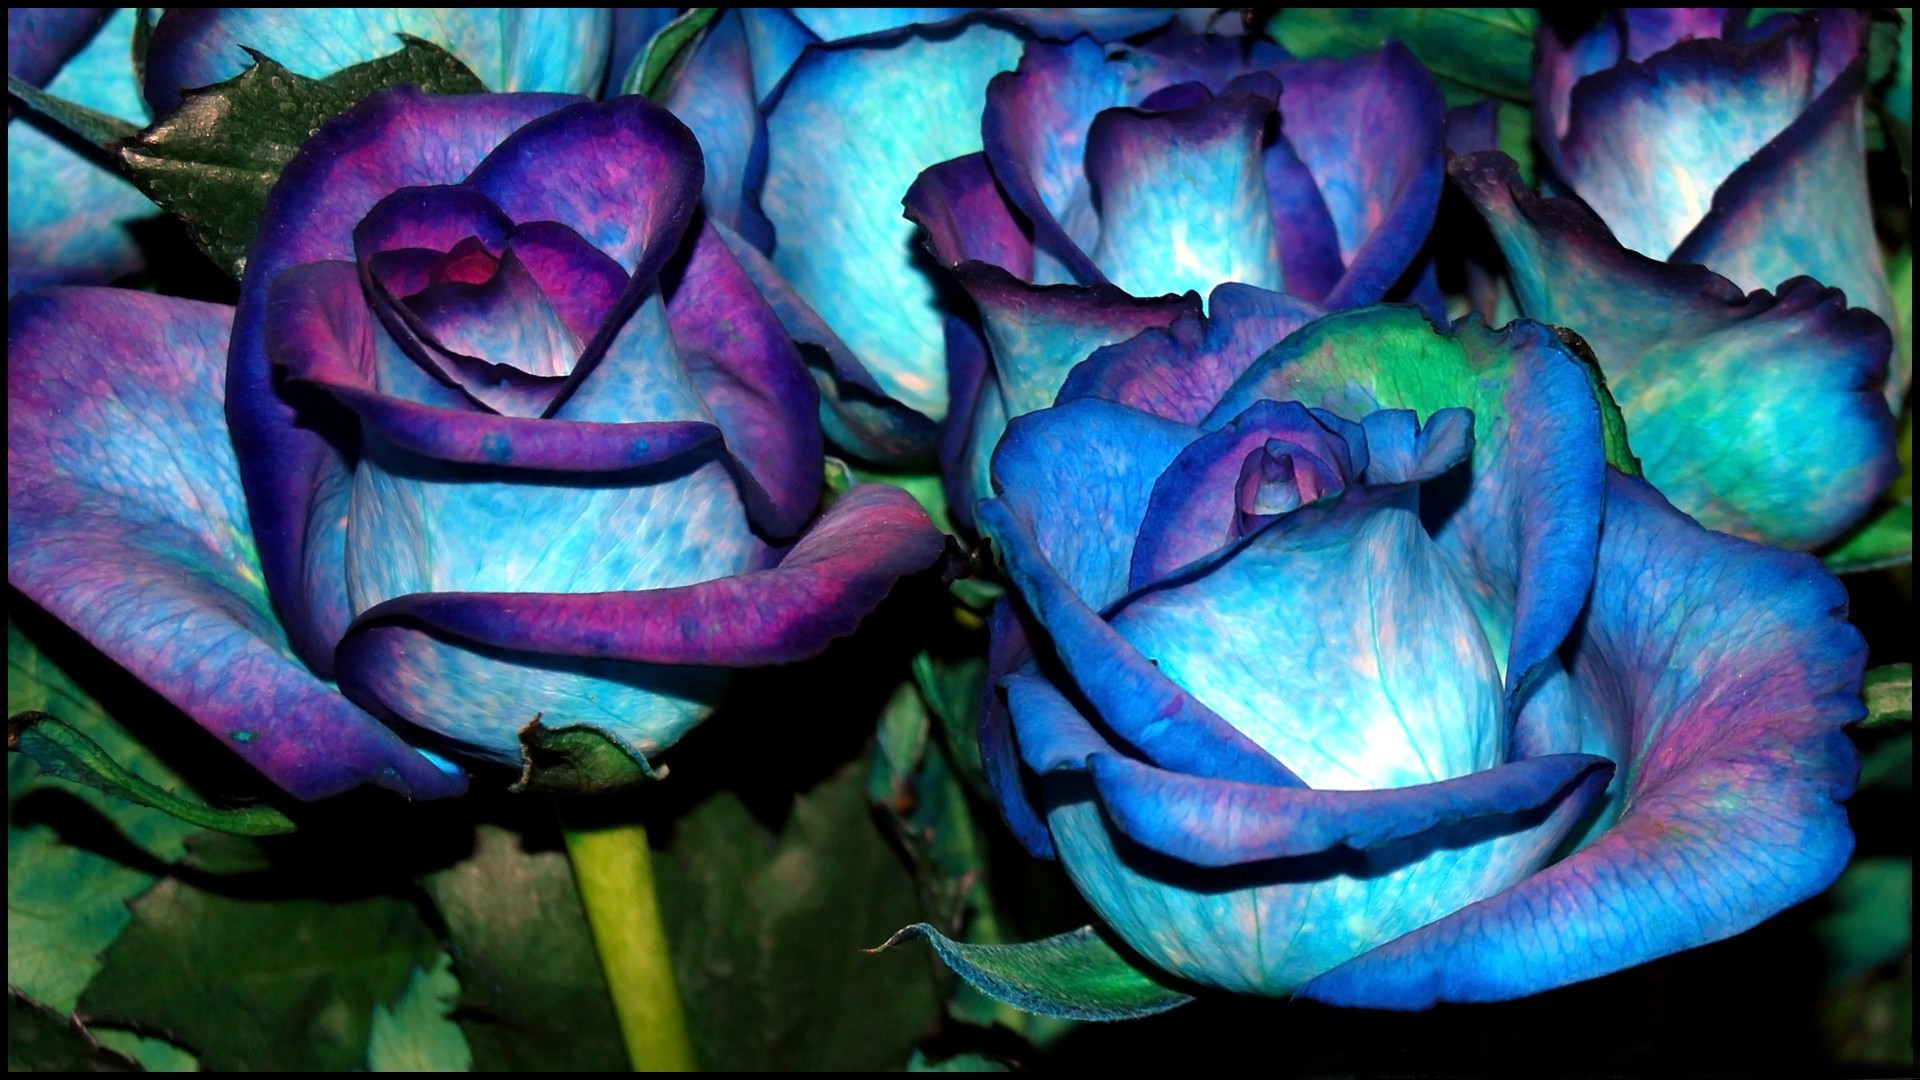 Blue Rose Flower Background HD Wallpaper Blue Rose Flower Wallpaper